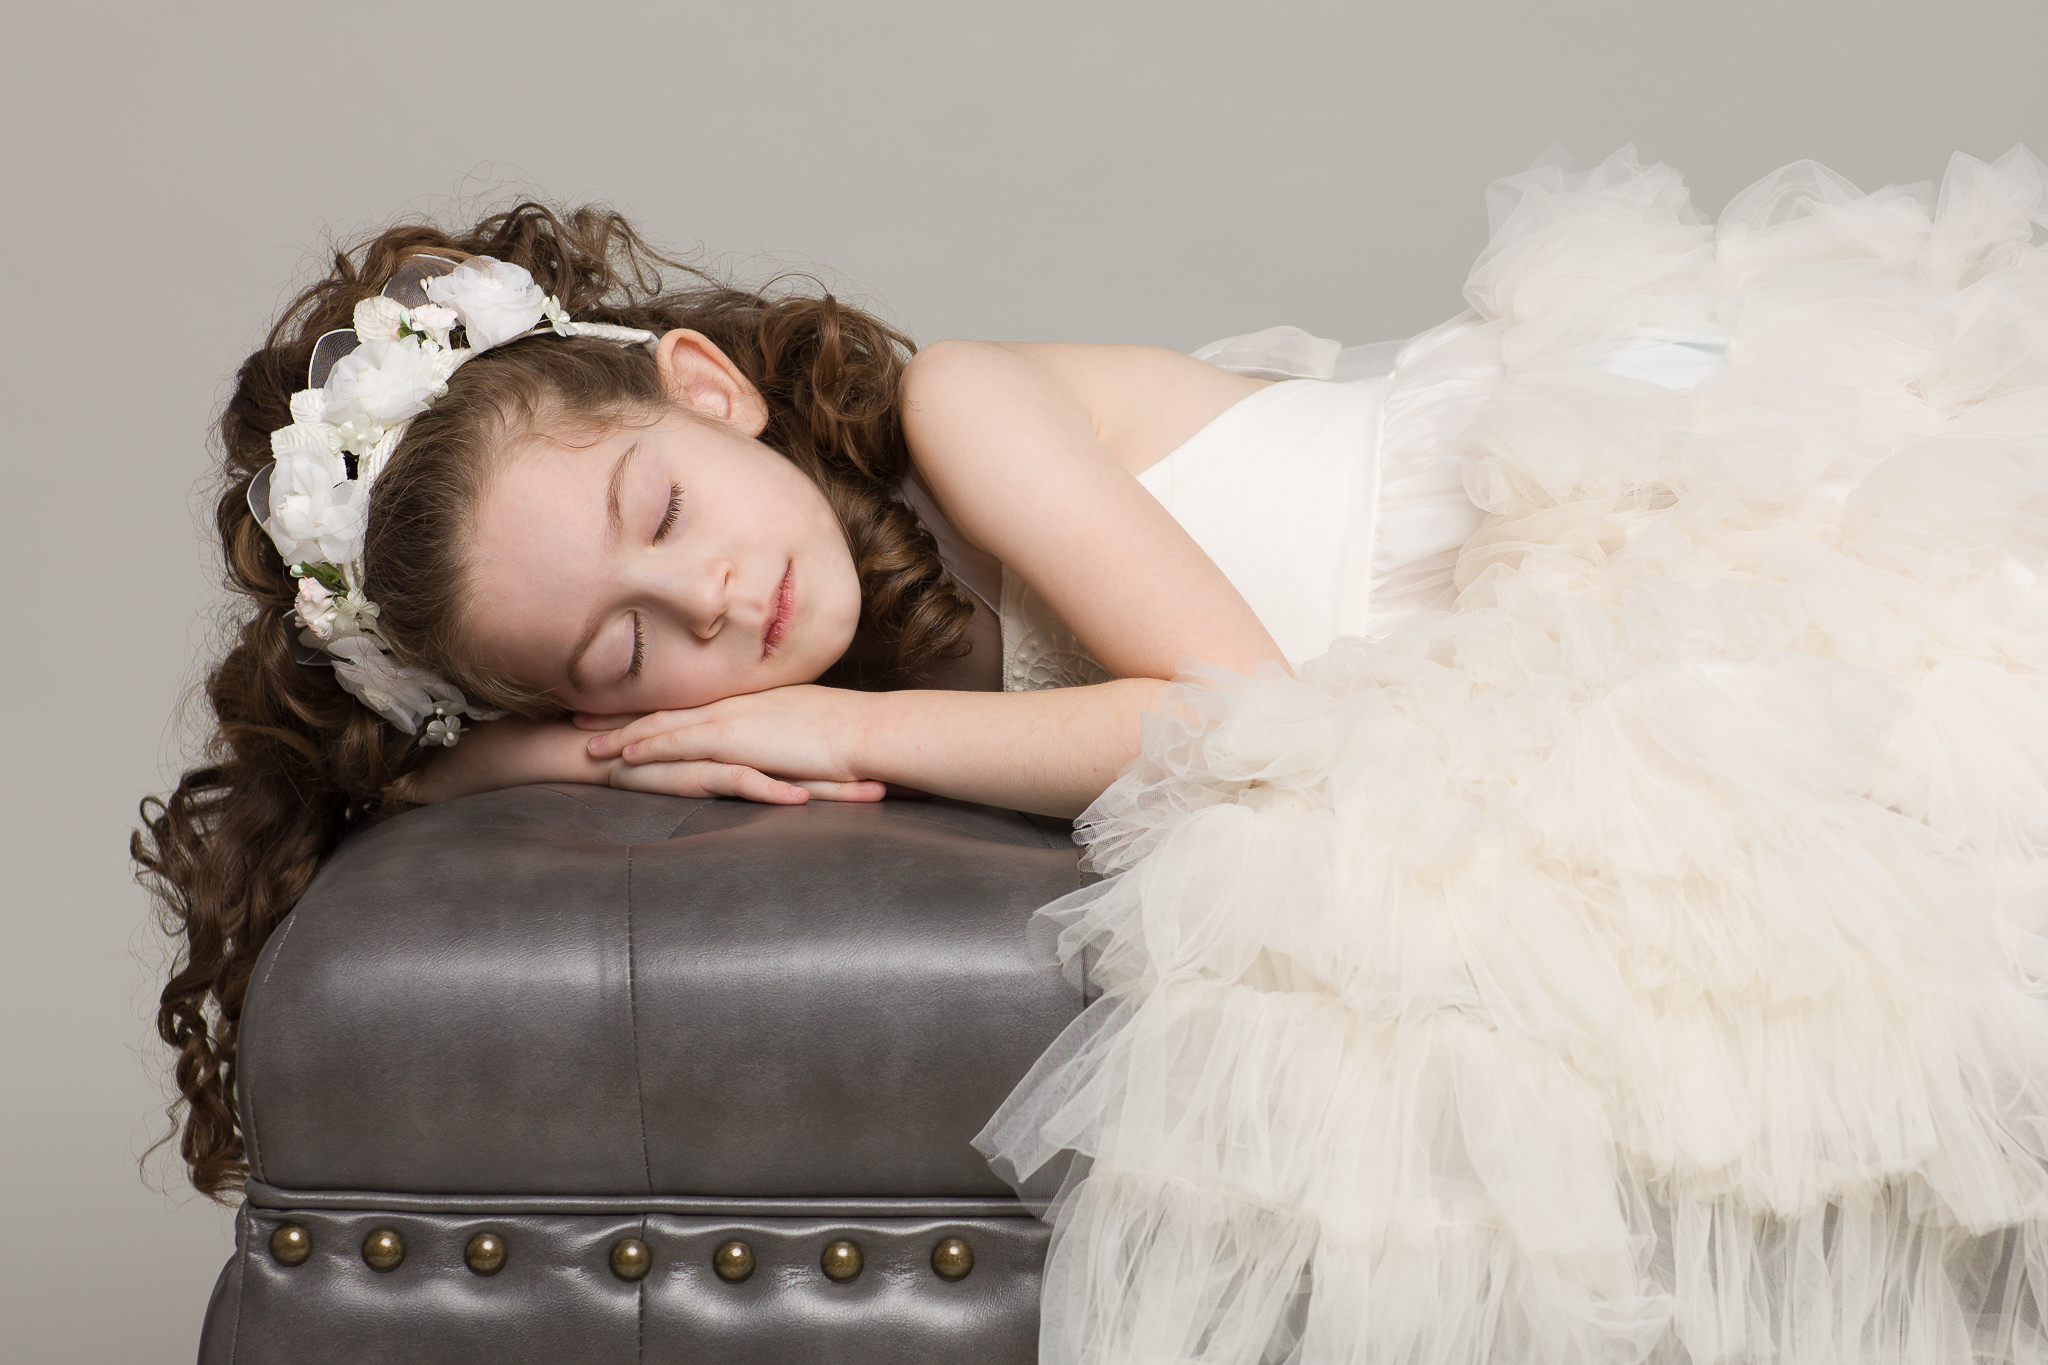 Classic-Couture-Sleeping-Beauty-Resting-Dollcake-Frock-White-Princess-Dress-Portrait-Leather-Ottoman